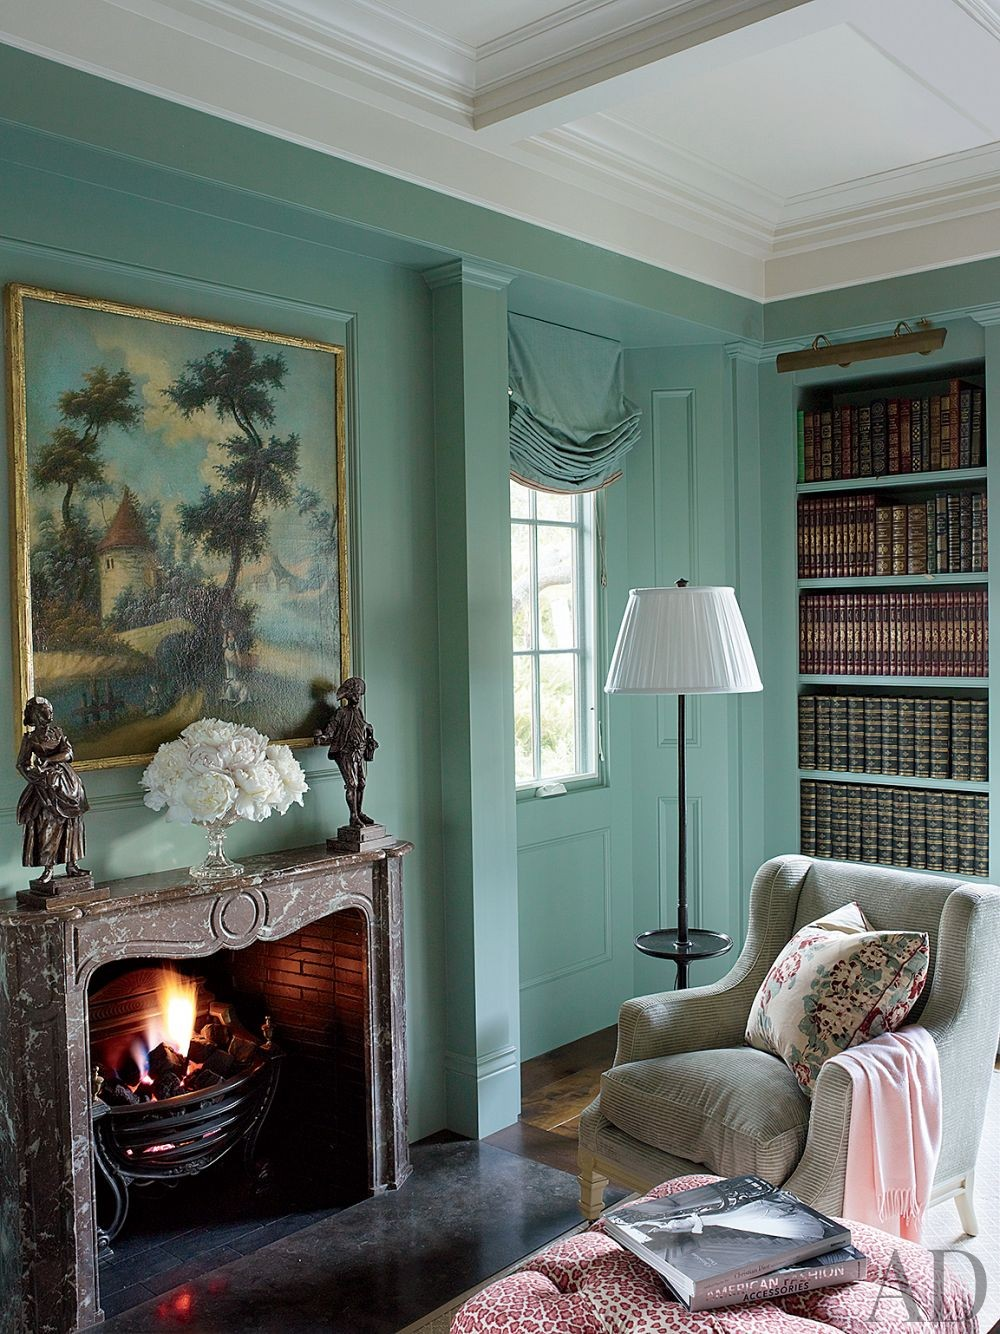 teal decorating ideas for living room decoration according to vastu 10 rooms that boast a color view in gallery